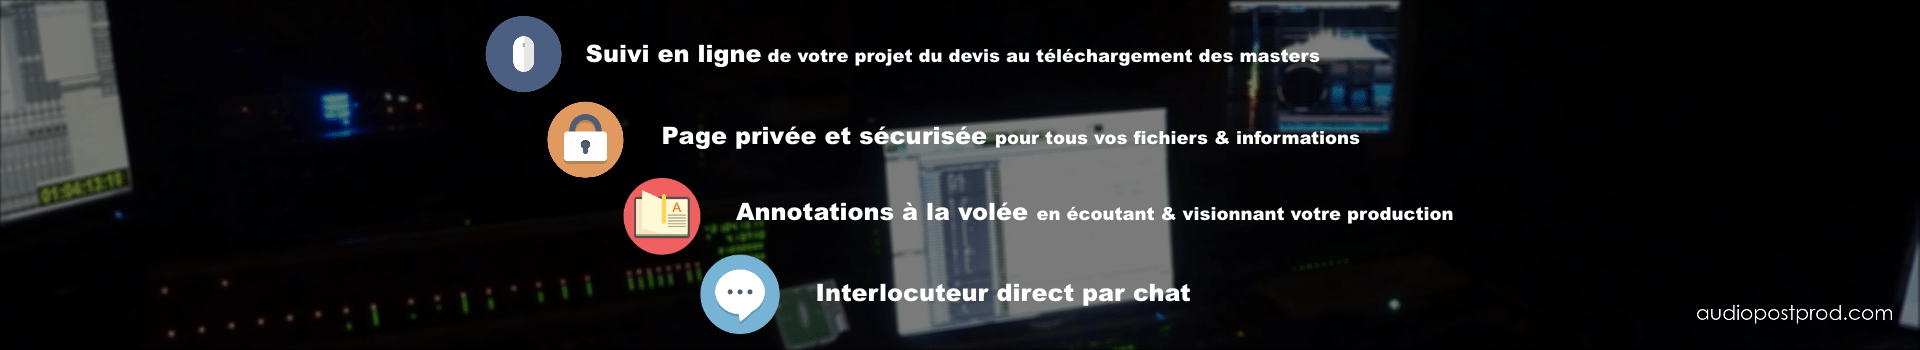 audiopostprod.com, tous les services de la post-production sonore en ligne.